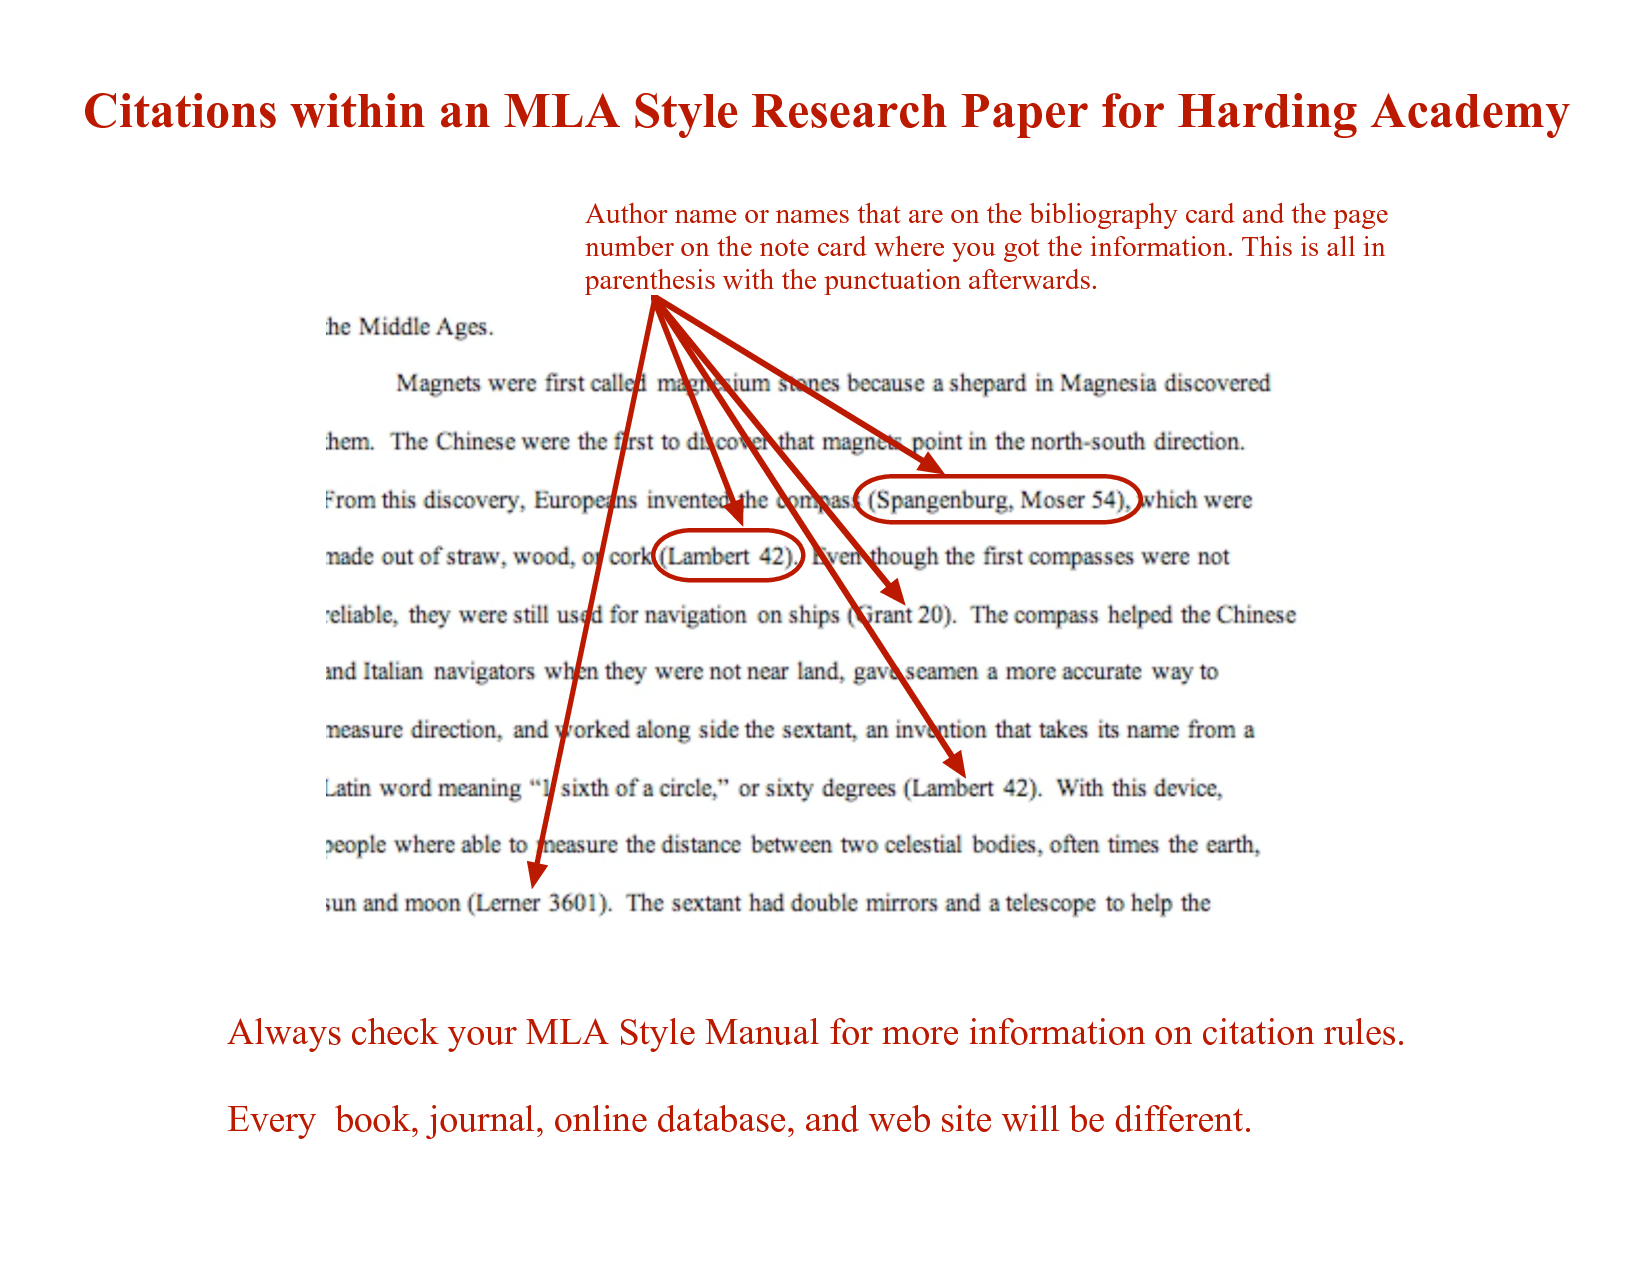 mla citation within the essay In mla style, in-text citations, called parenthetical citations, are used to document any external sources used within a document (unless the material cited is considered general knowledge.